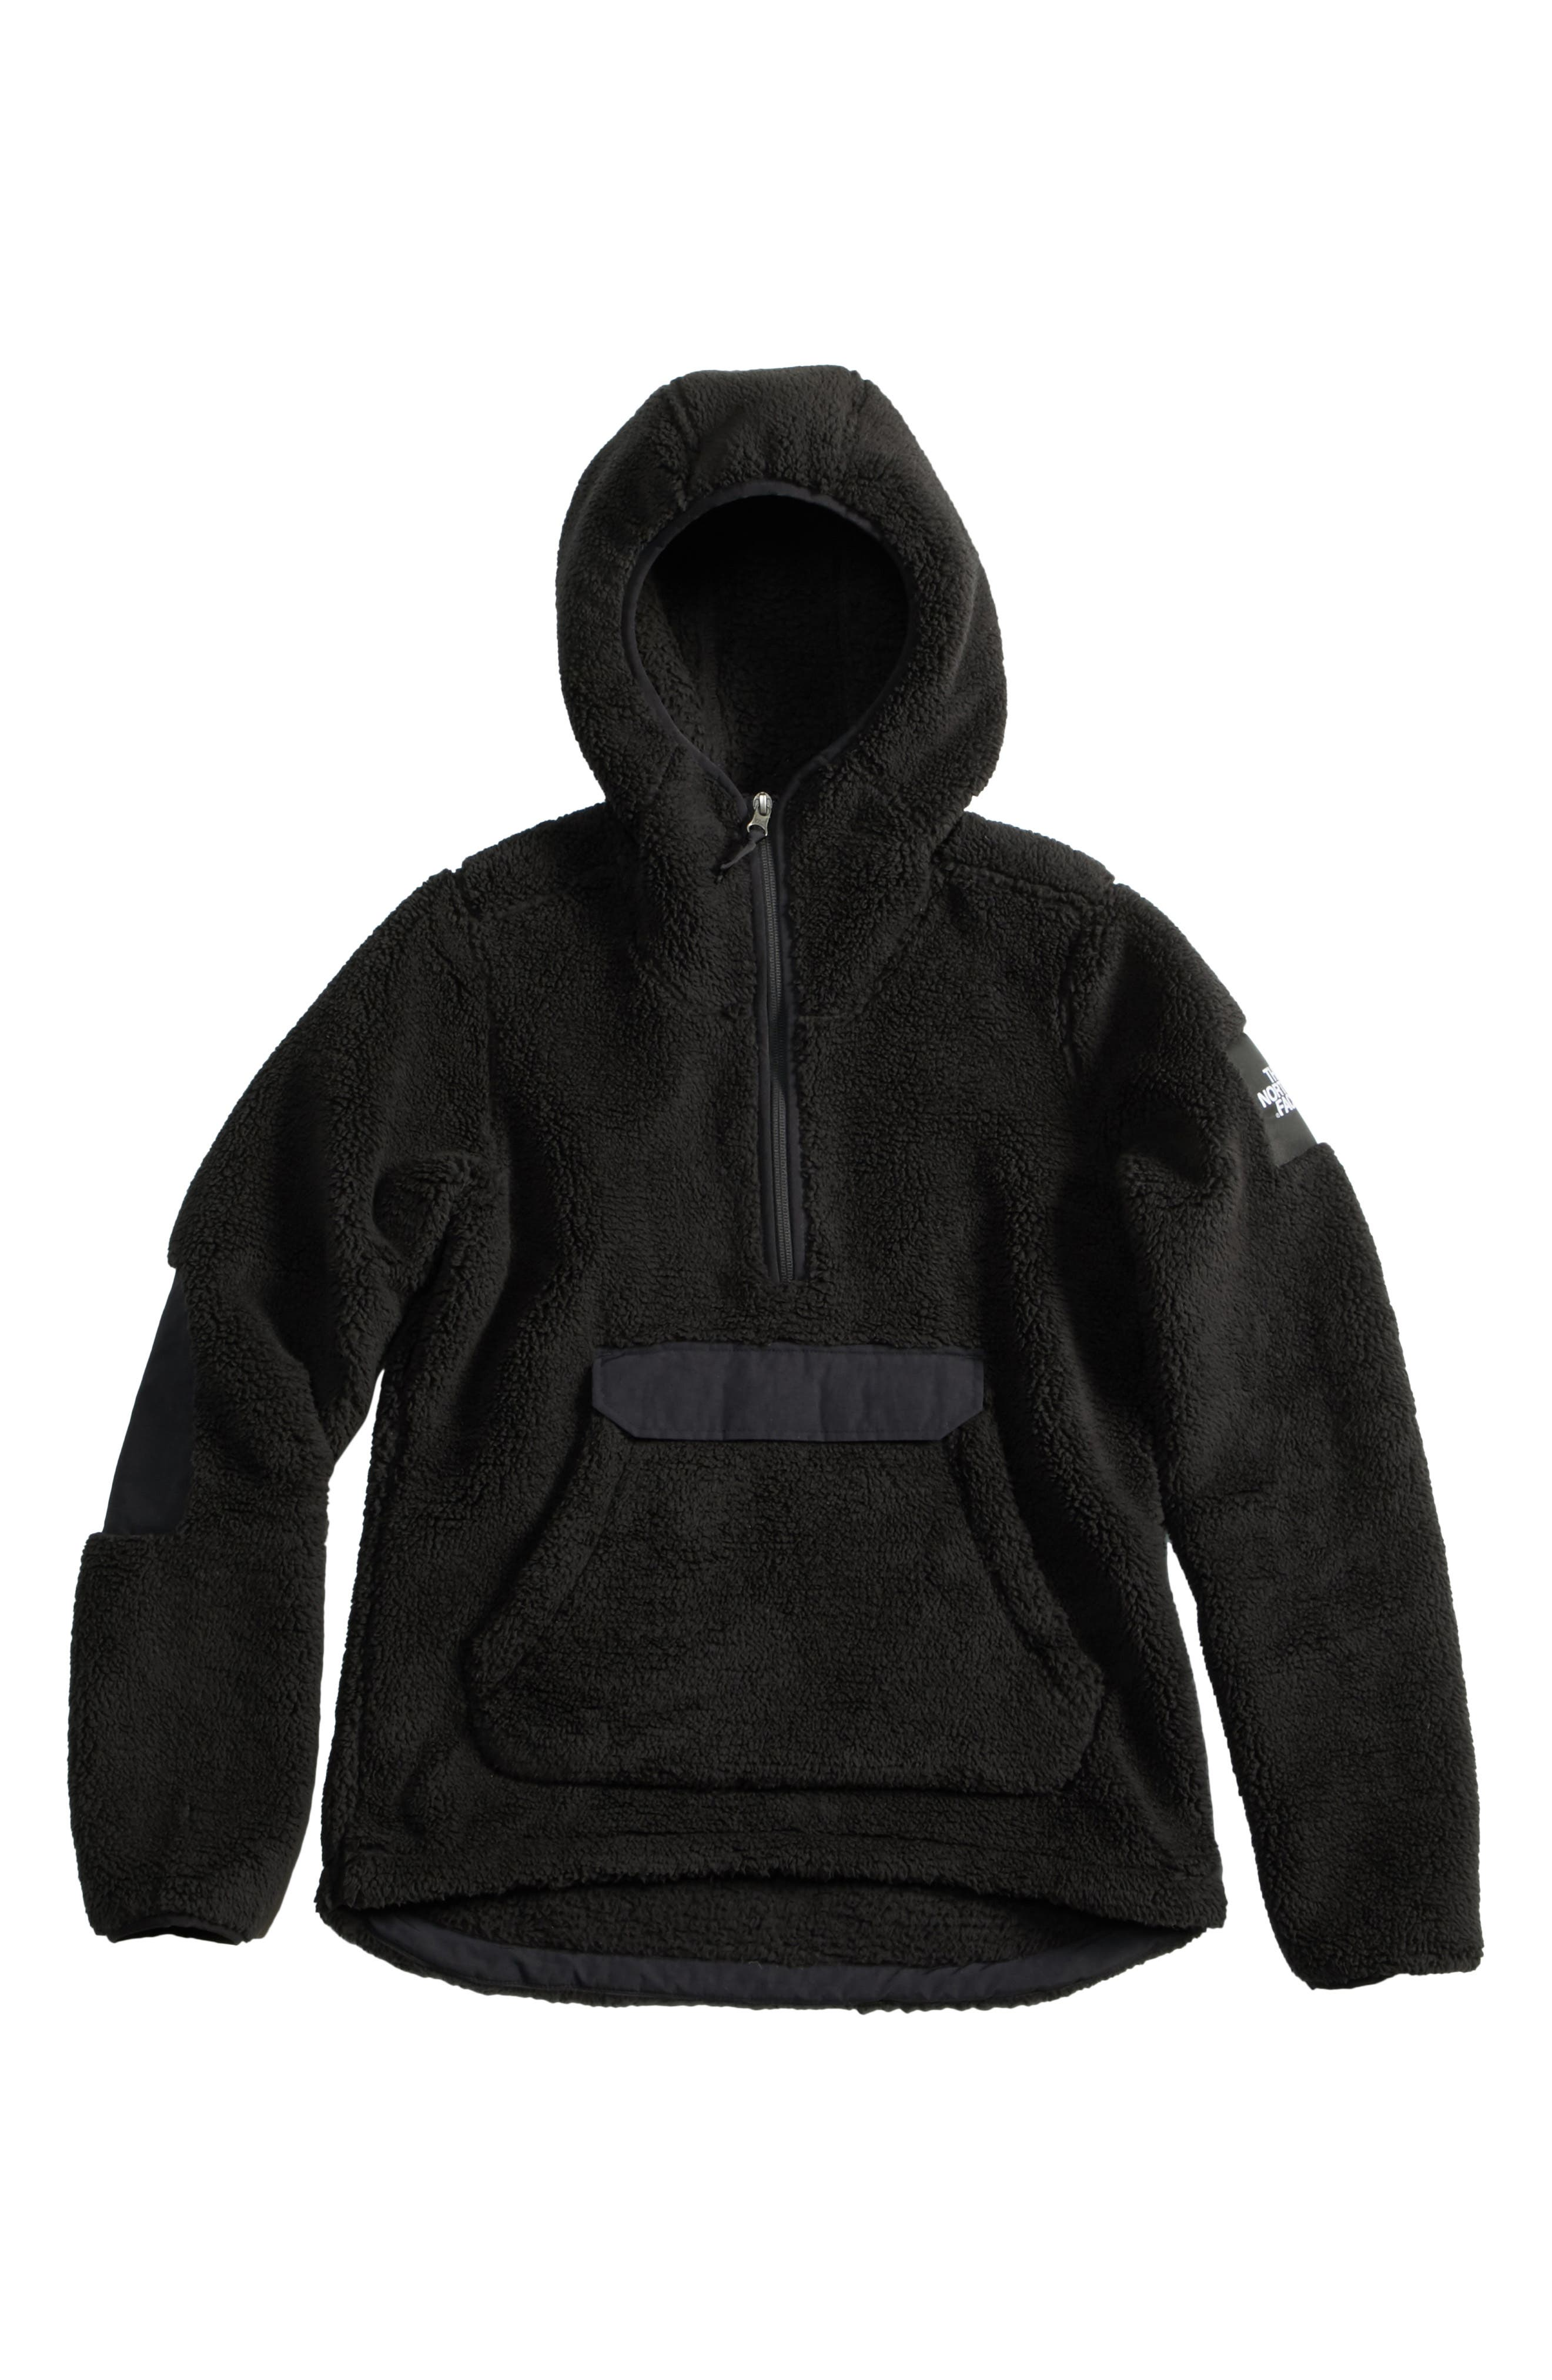 Campshire High Pile Fleece Pullover Hoodie,                             Main thumbnail 1, color,                             Tnf Black